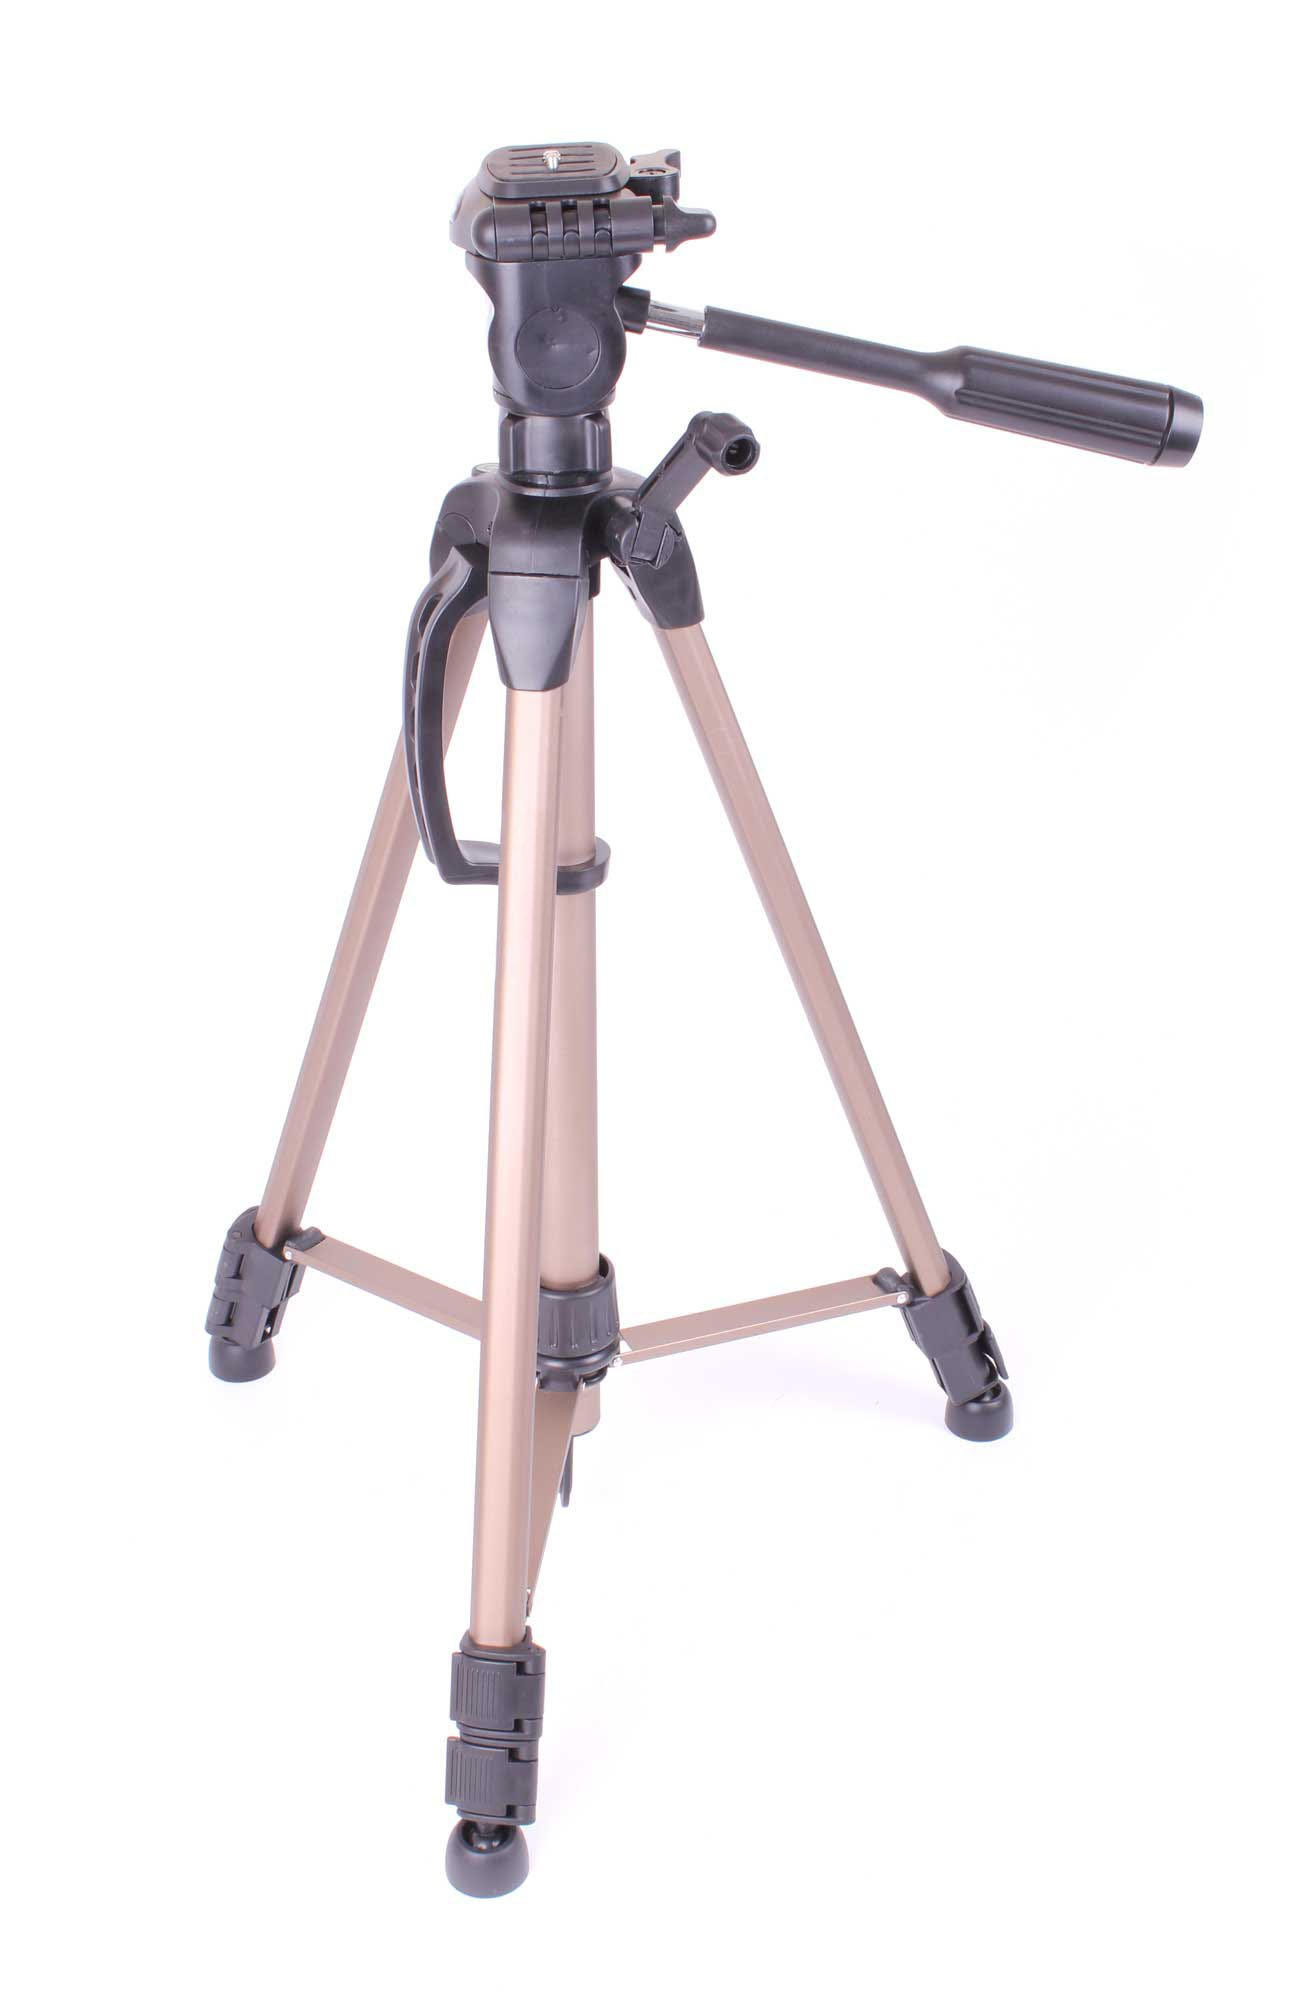 High Quality Lightweight And Adjustable Camcorder Tripod For Sony DSC-WX300 18.2MP Digital Camera w/ 20x Zoom & WiFi,